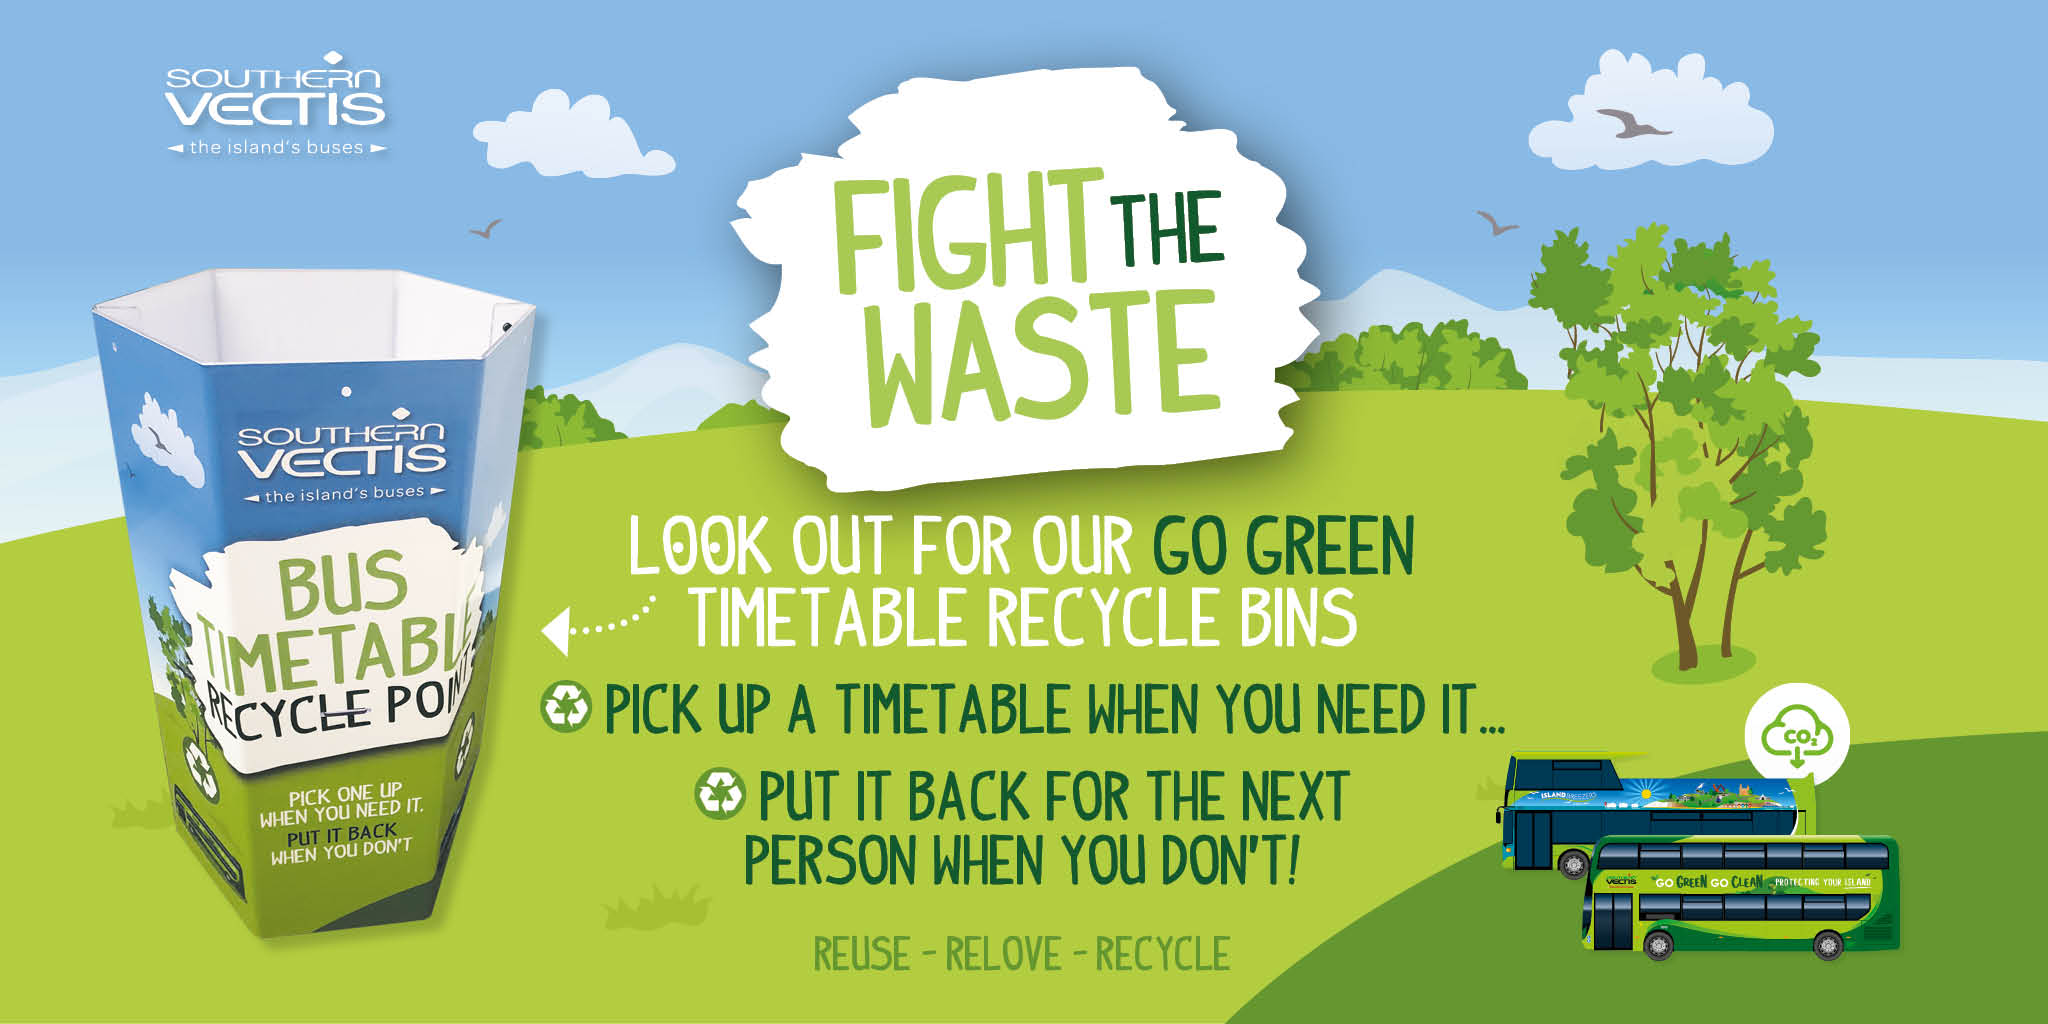 FIGHT THE WASTE